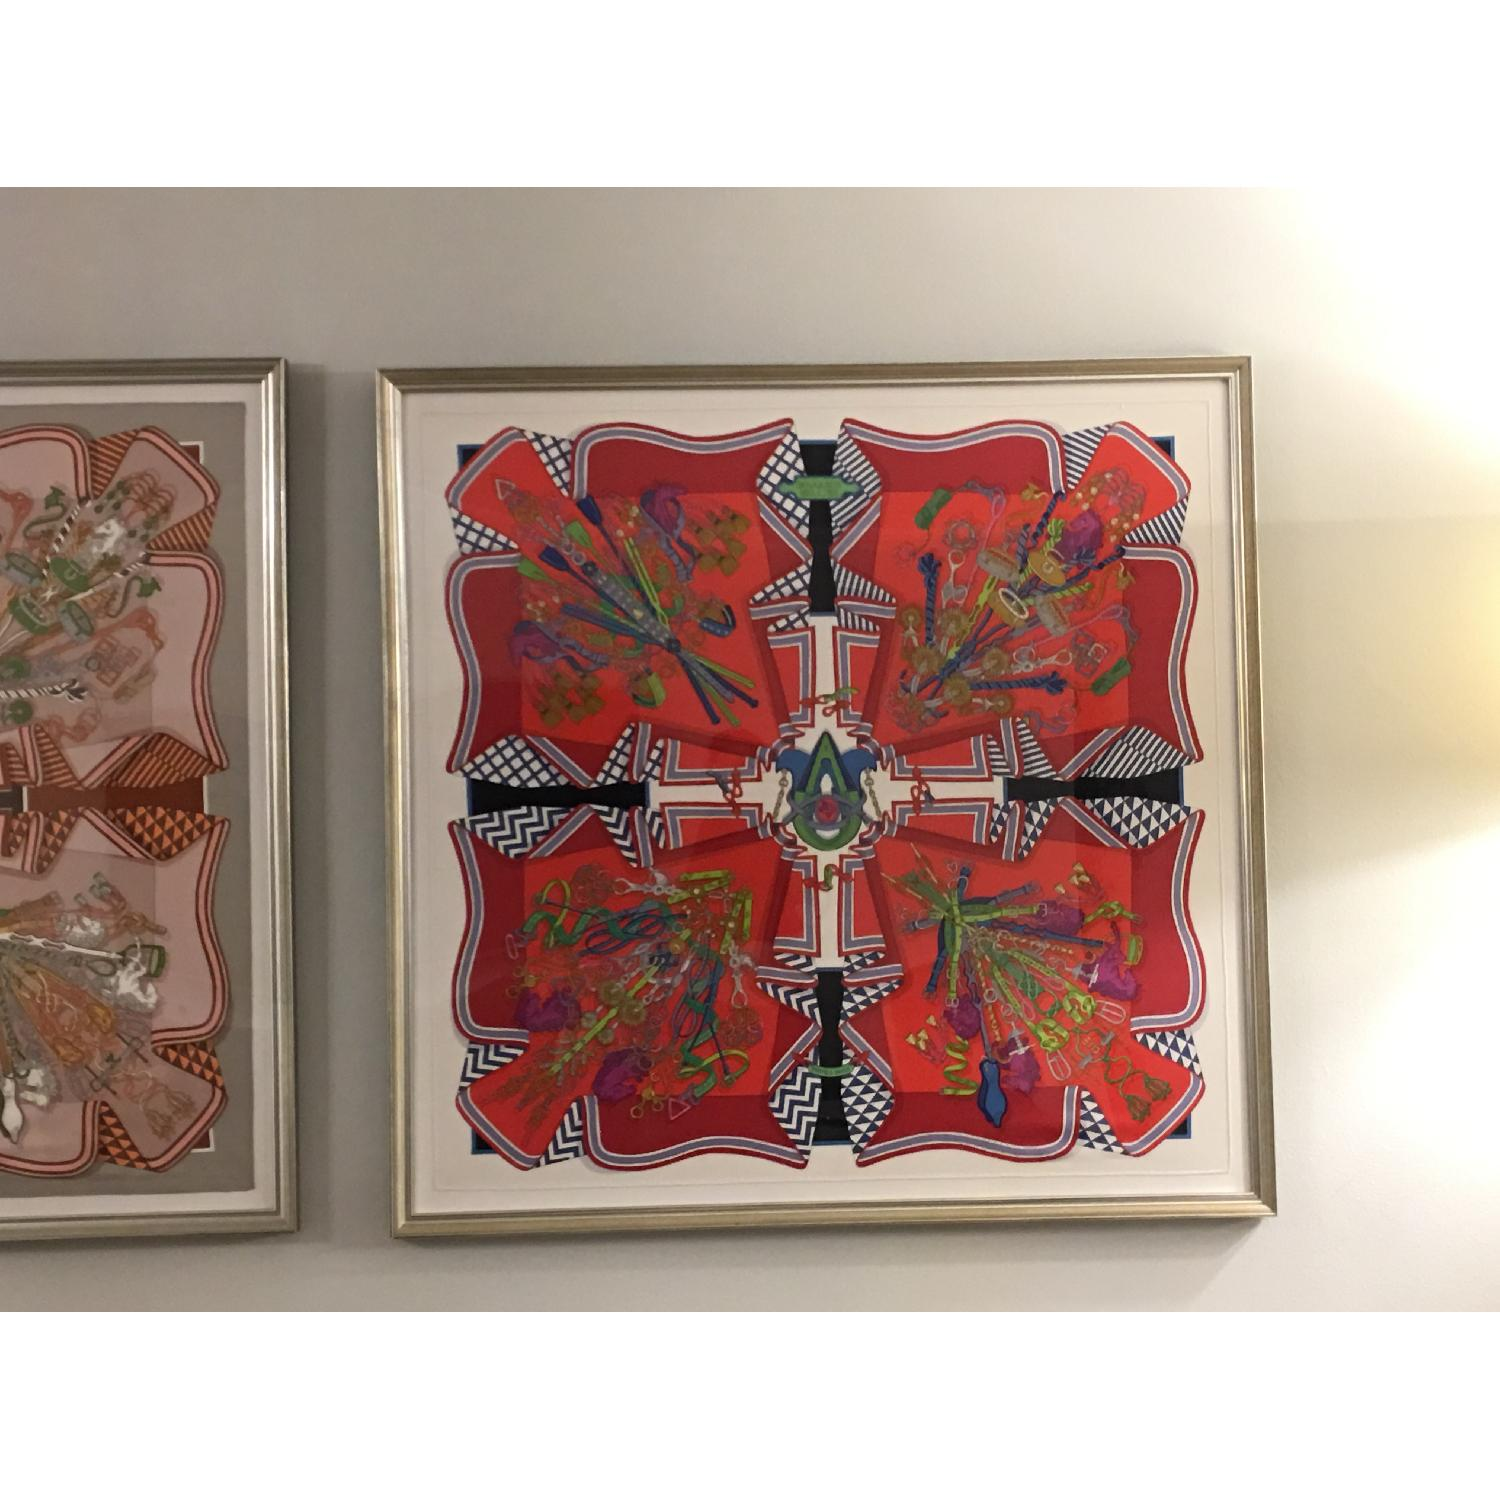 Hermes Framed Scarf Bouquet Sellier in Red - image-5